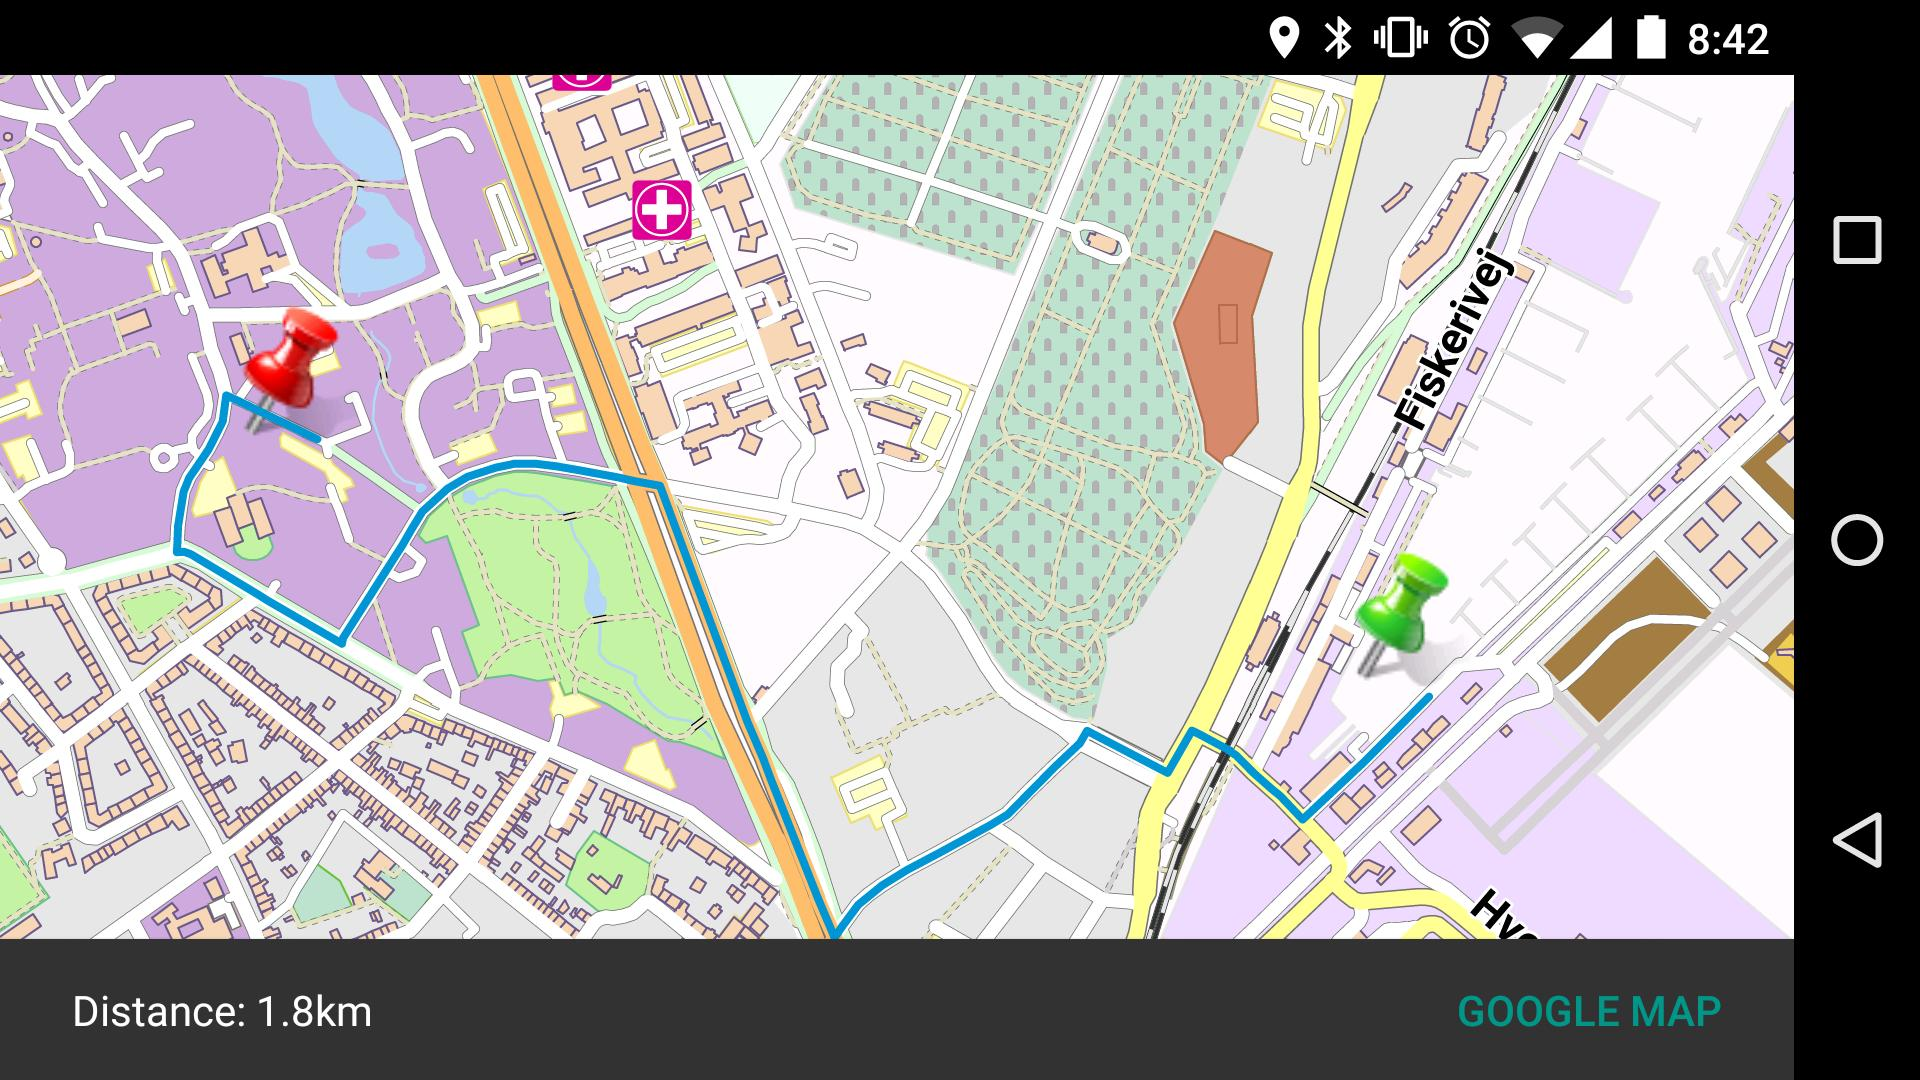 PANAMA-CITY PANAMA MAP for Android - APK Download